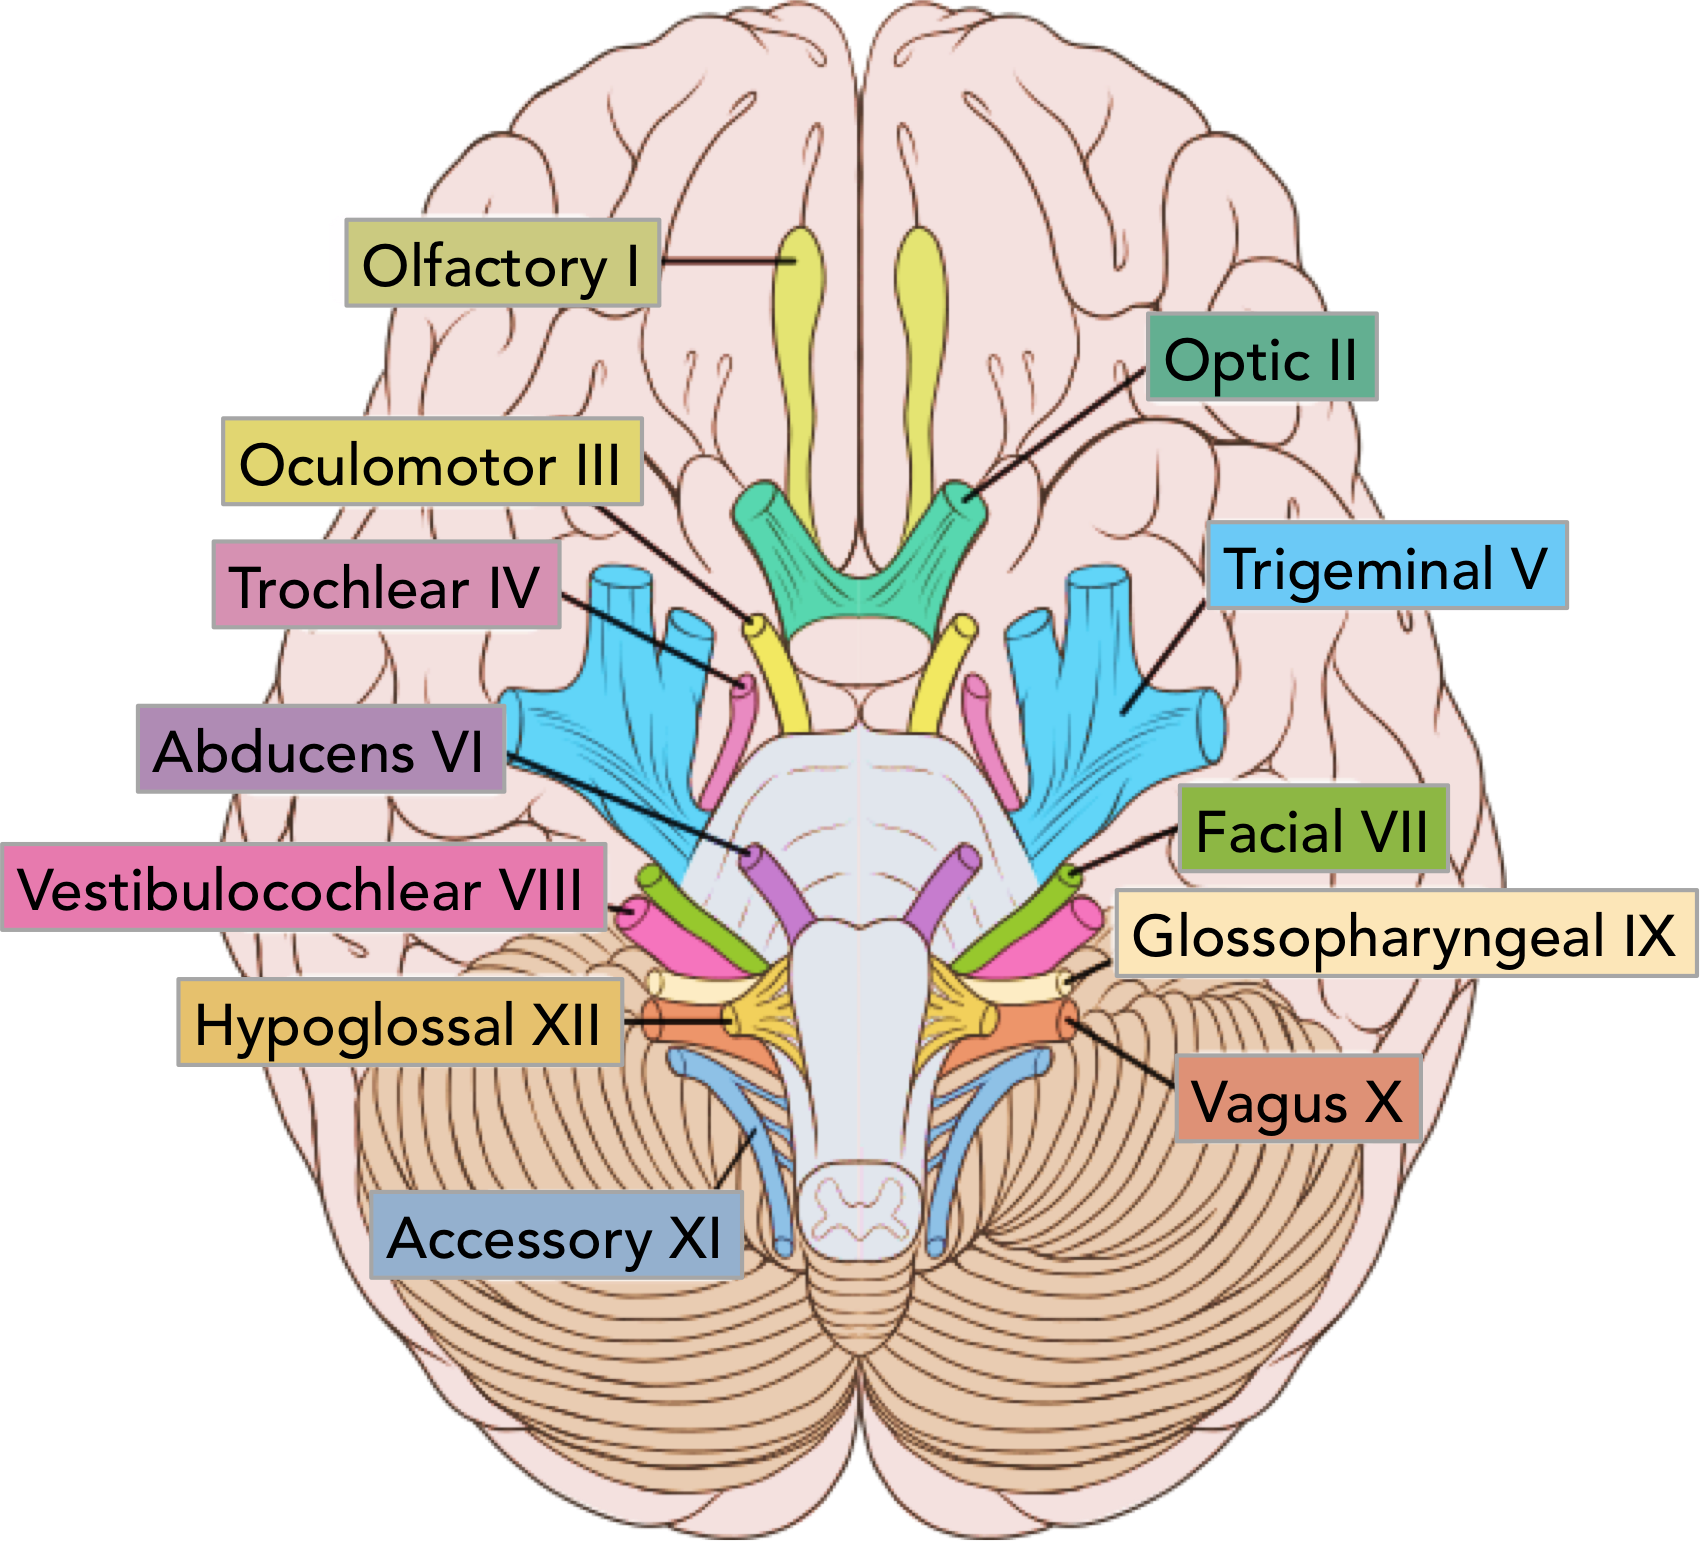 Click the image to see the 12 cranial nerves.